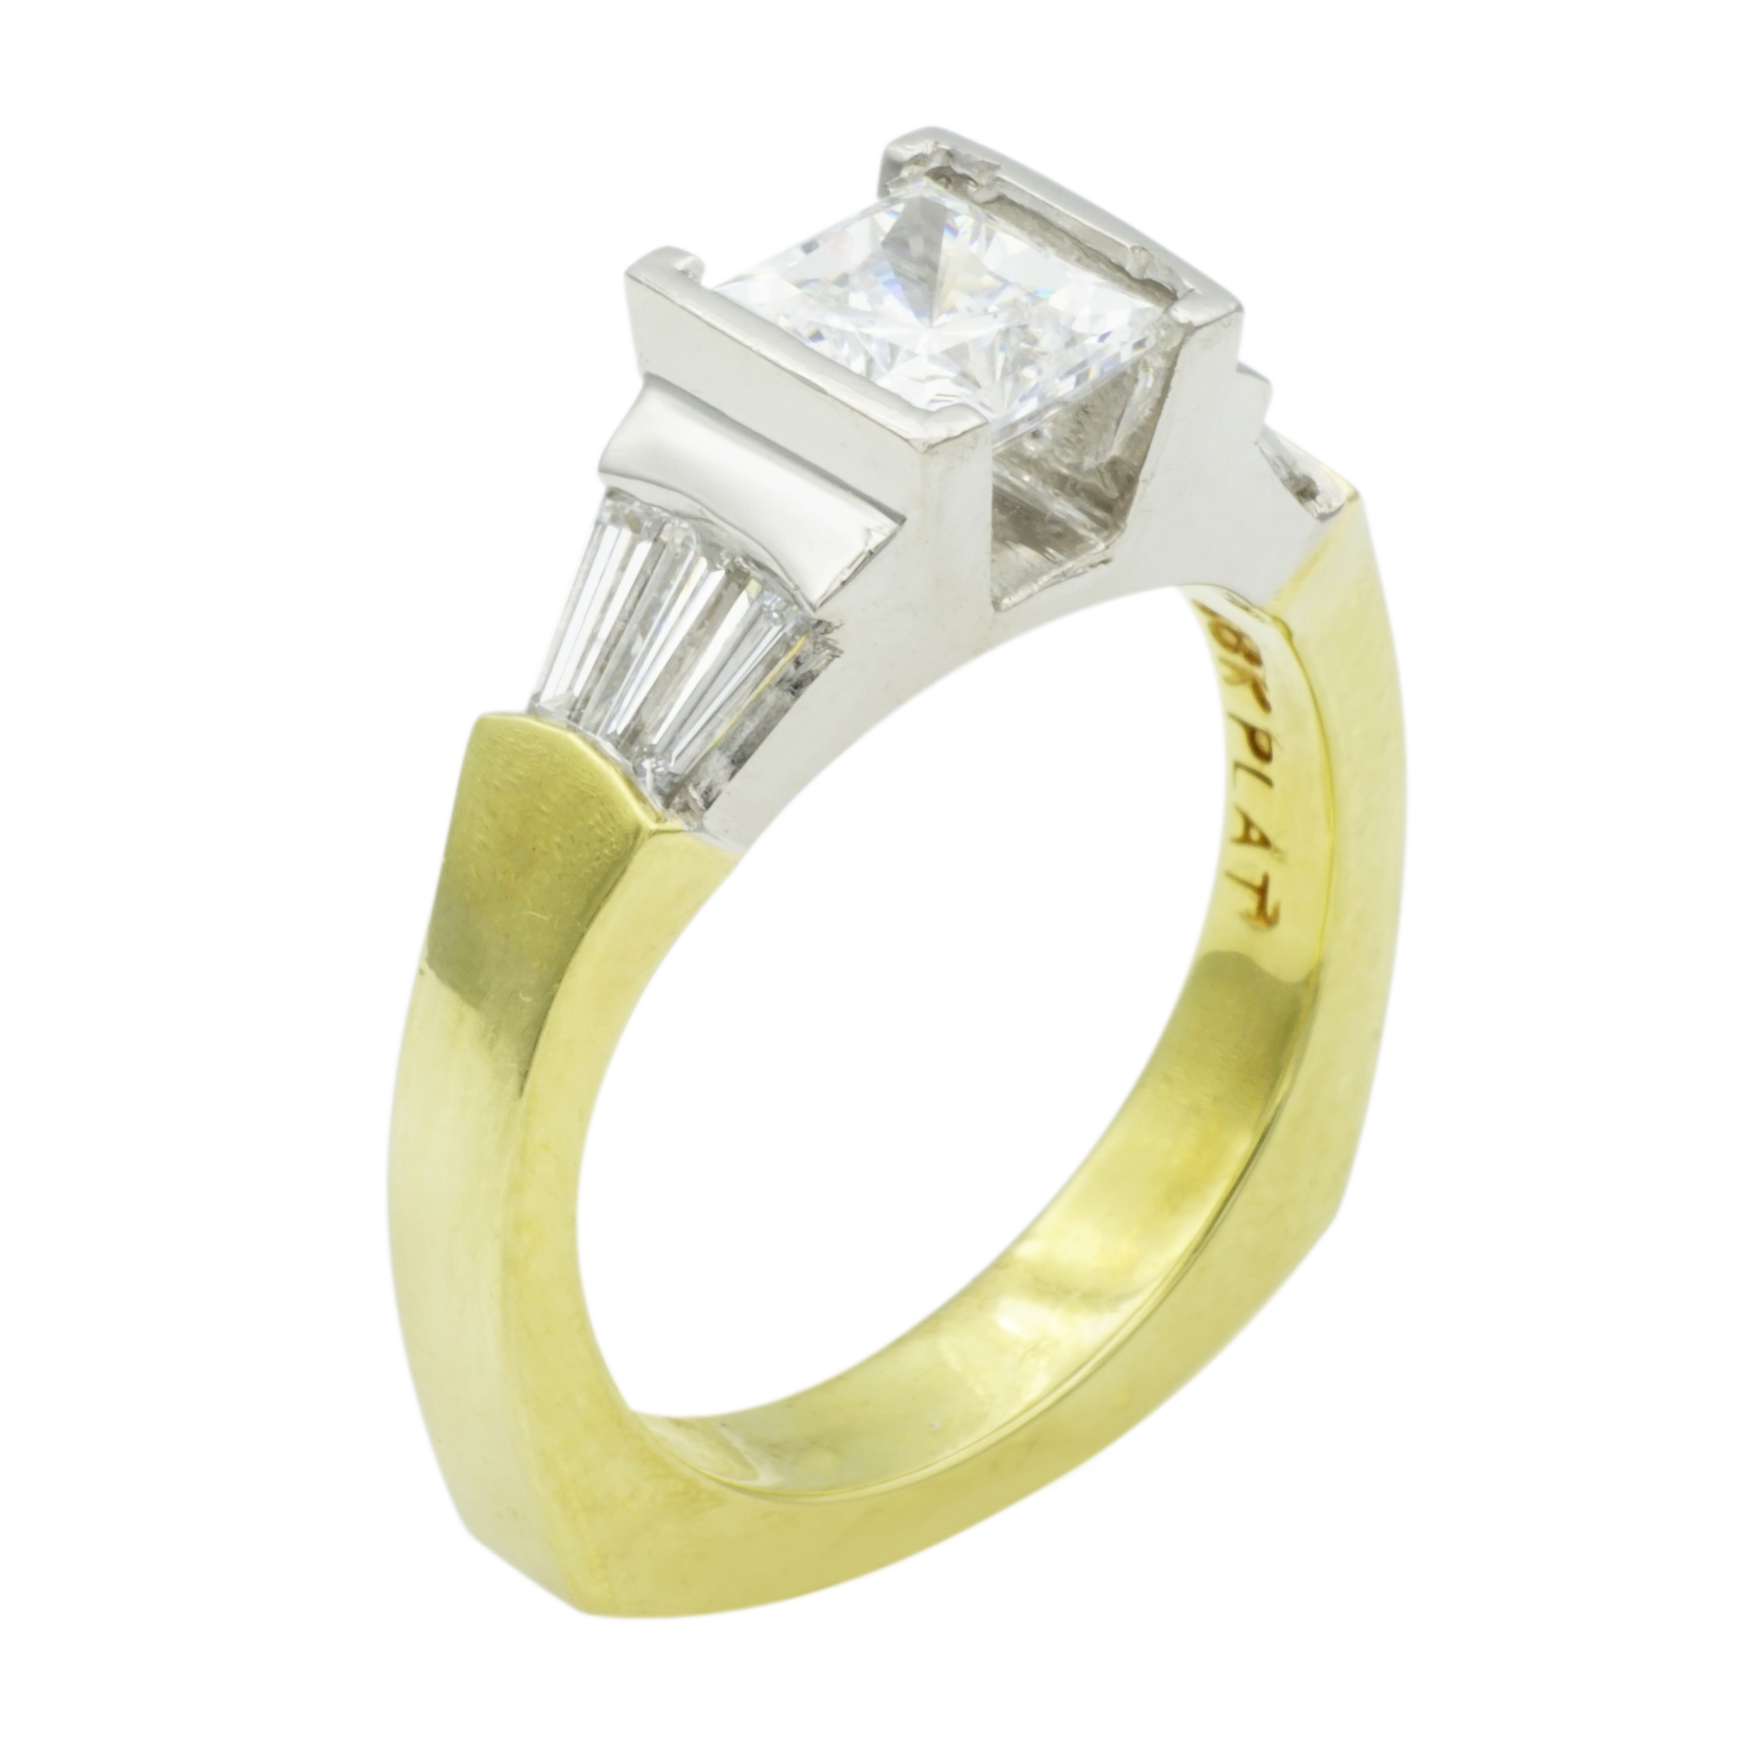 Princess Cut & Baguette Diamond Platinum & 18k Yellow Gold Engagement Ring